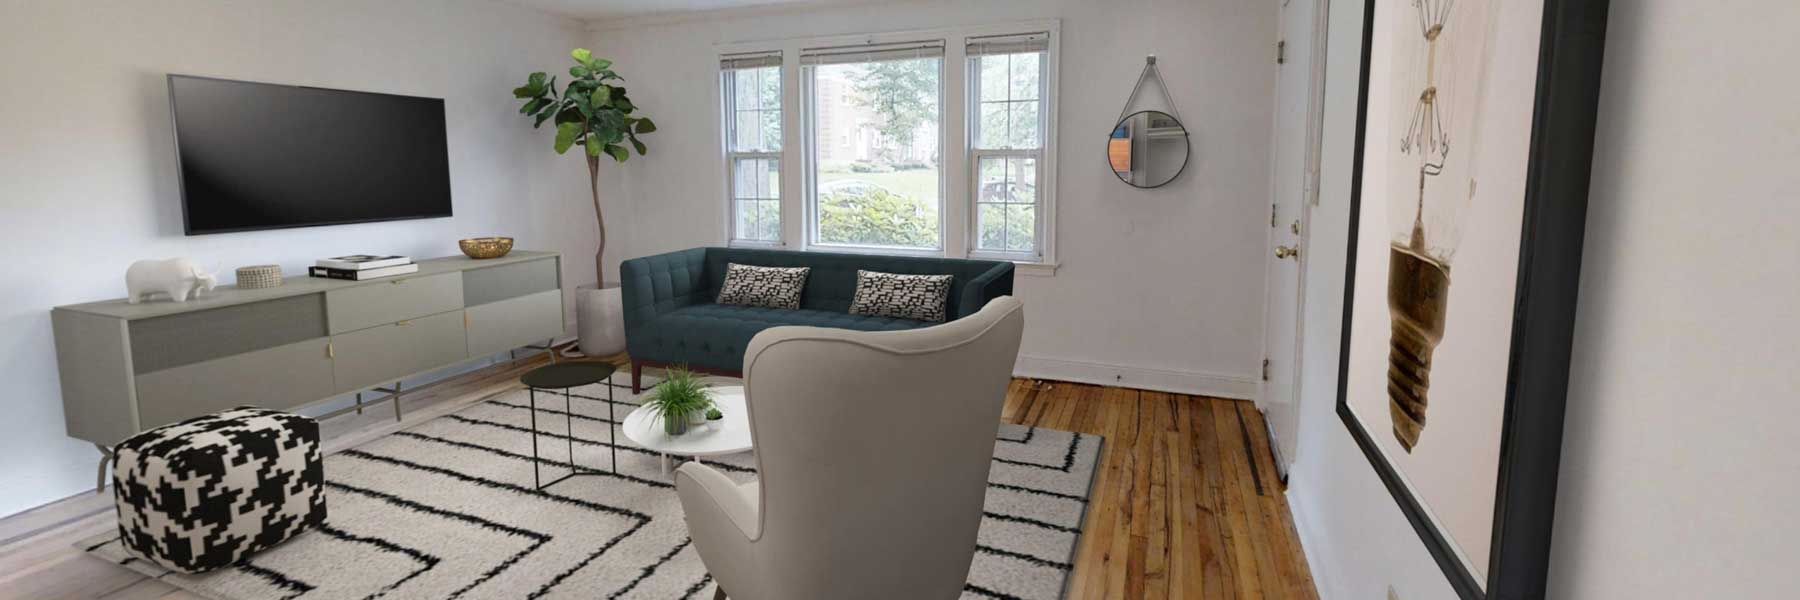 Brooksyde Apartments For Rent in West Hartford, CT Livingroom